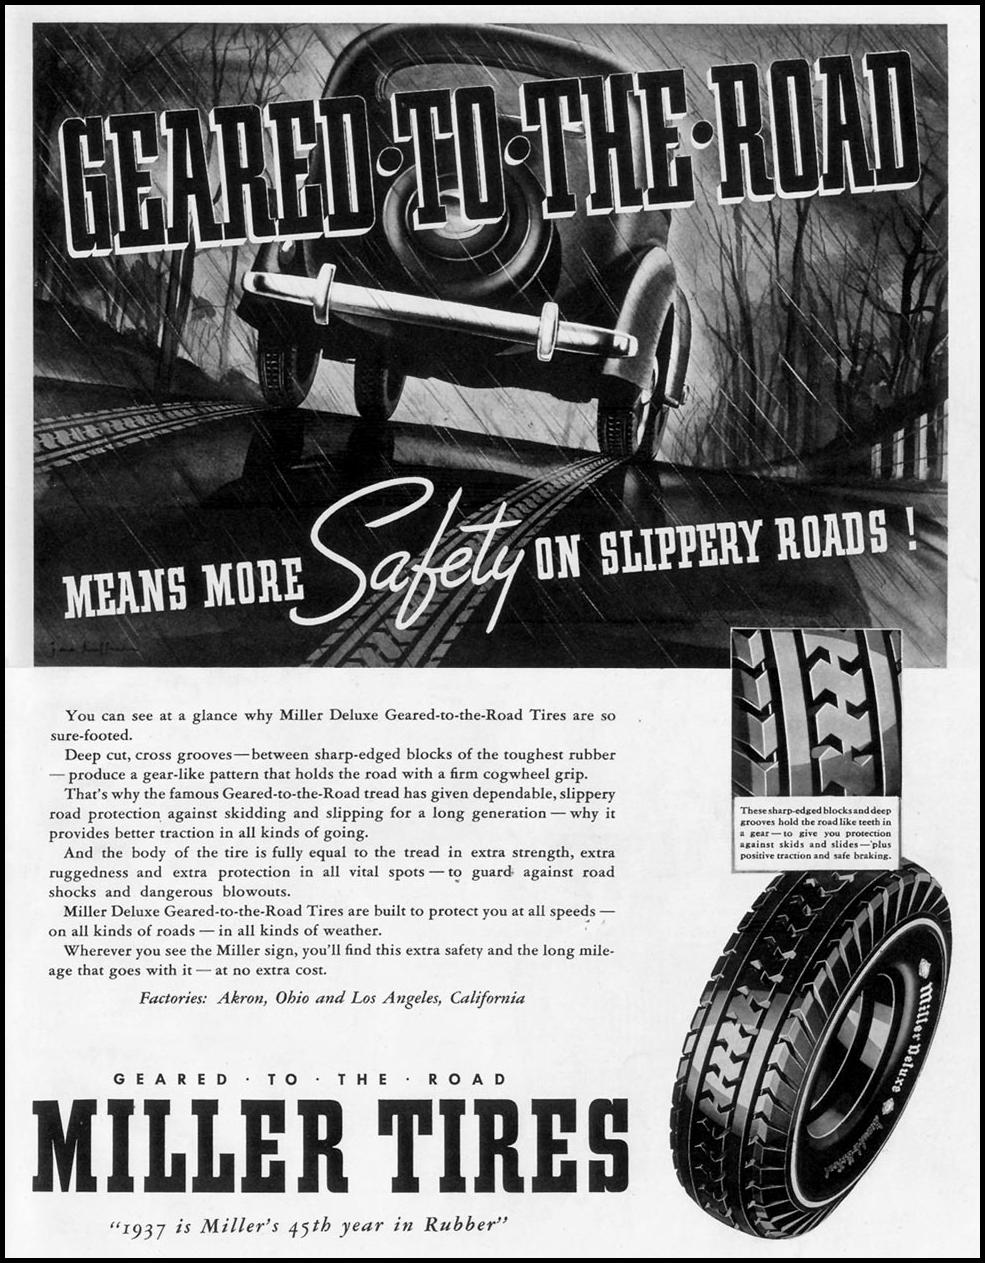 MILLER TIRES LIFE 10/04/1937 p. 1